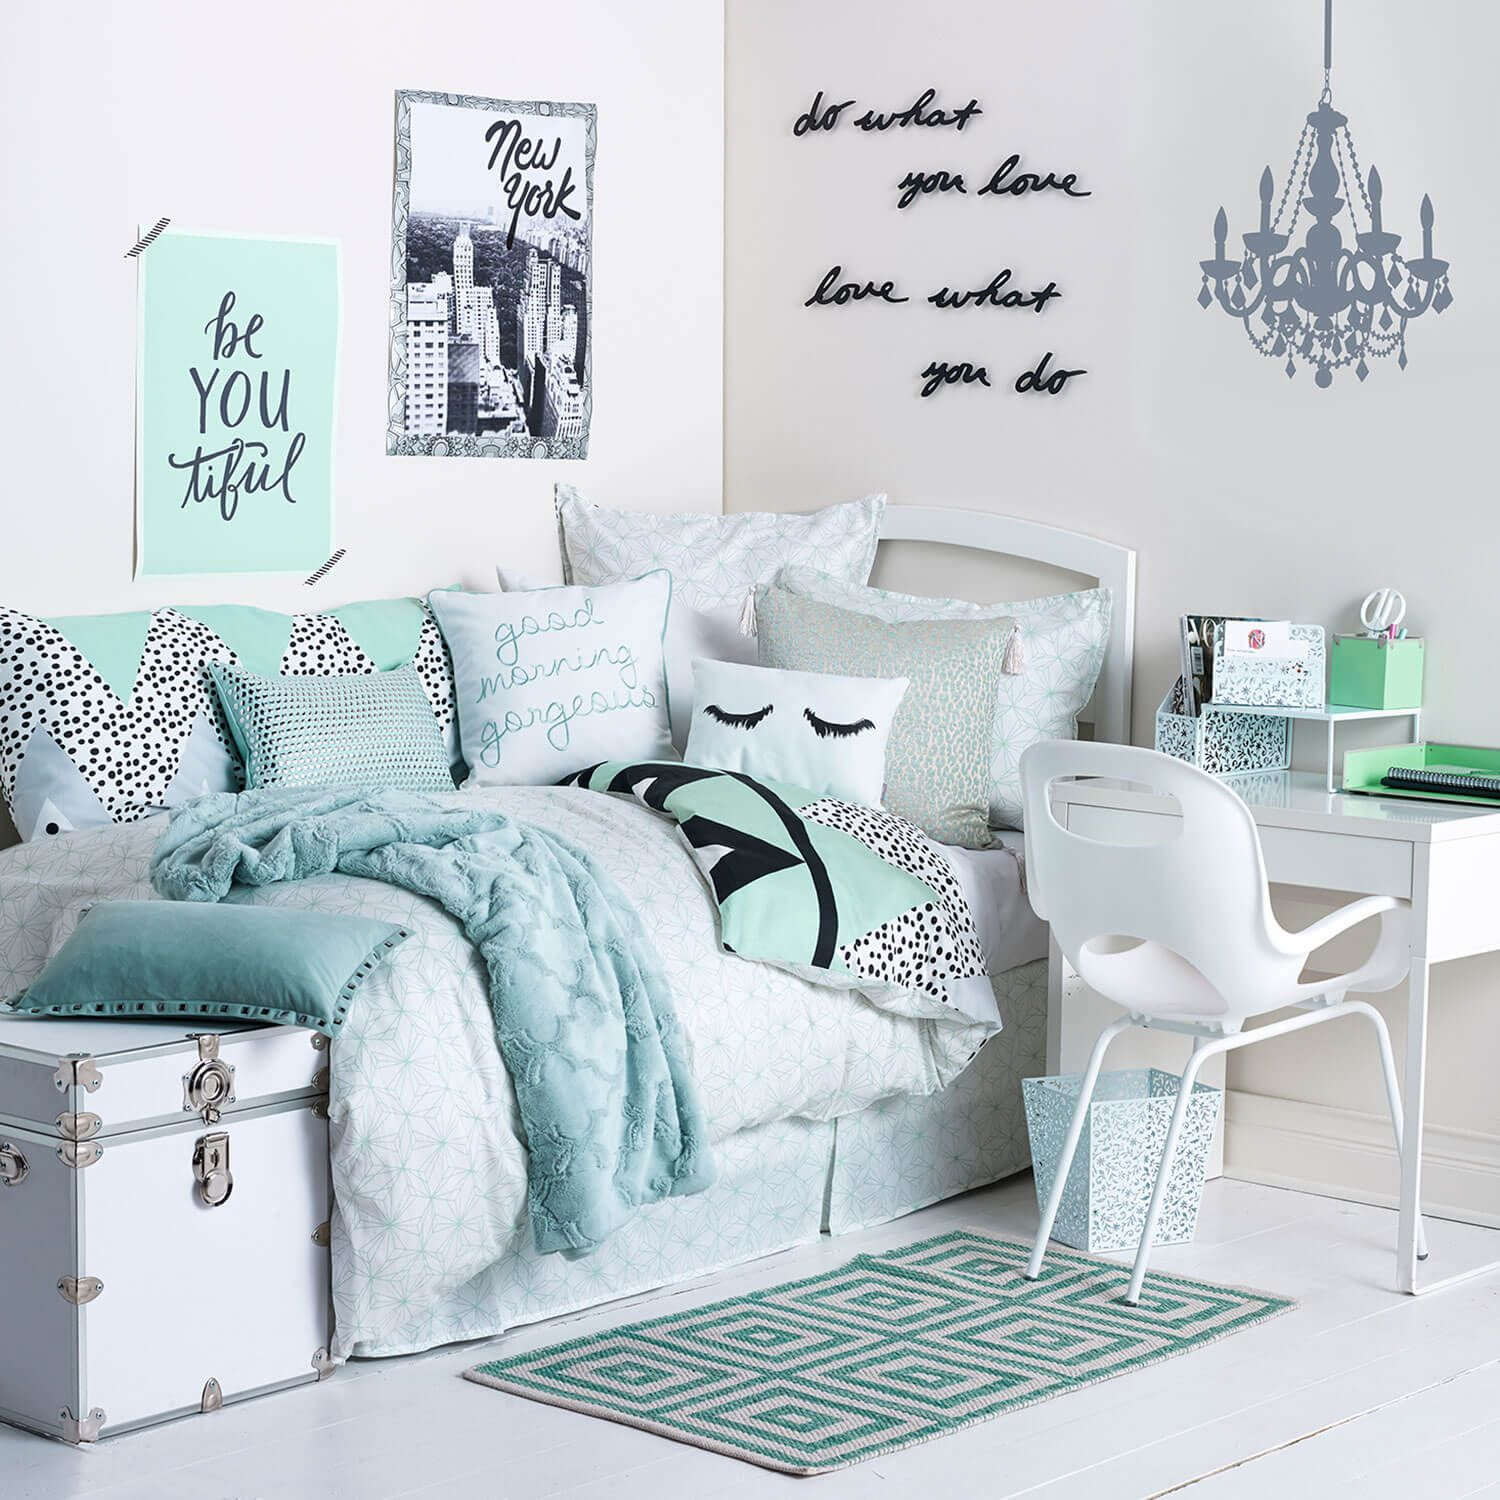 Uptown Girl Room available on dormify